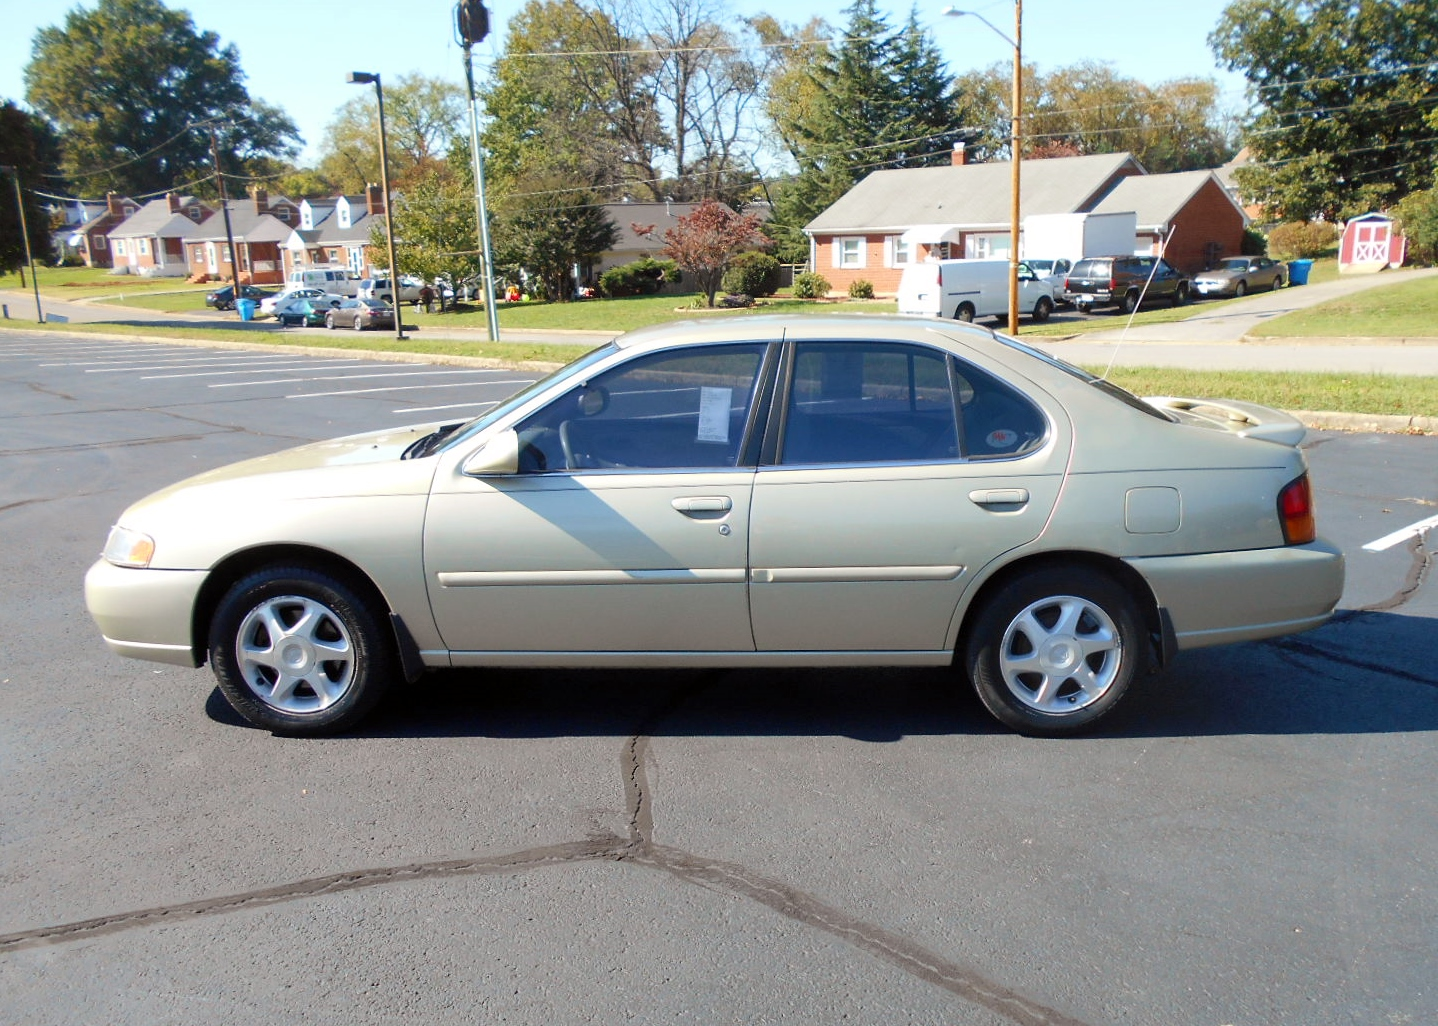 1998 nissan altima 1998 nissan altima 001 – automobile exchange